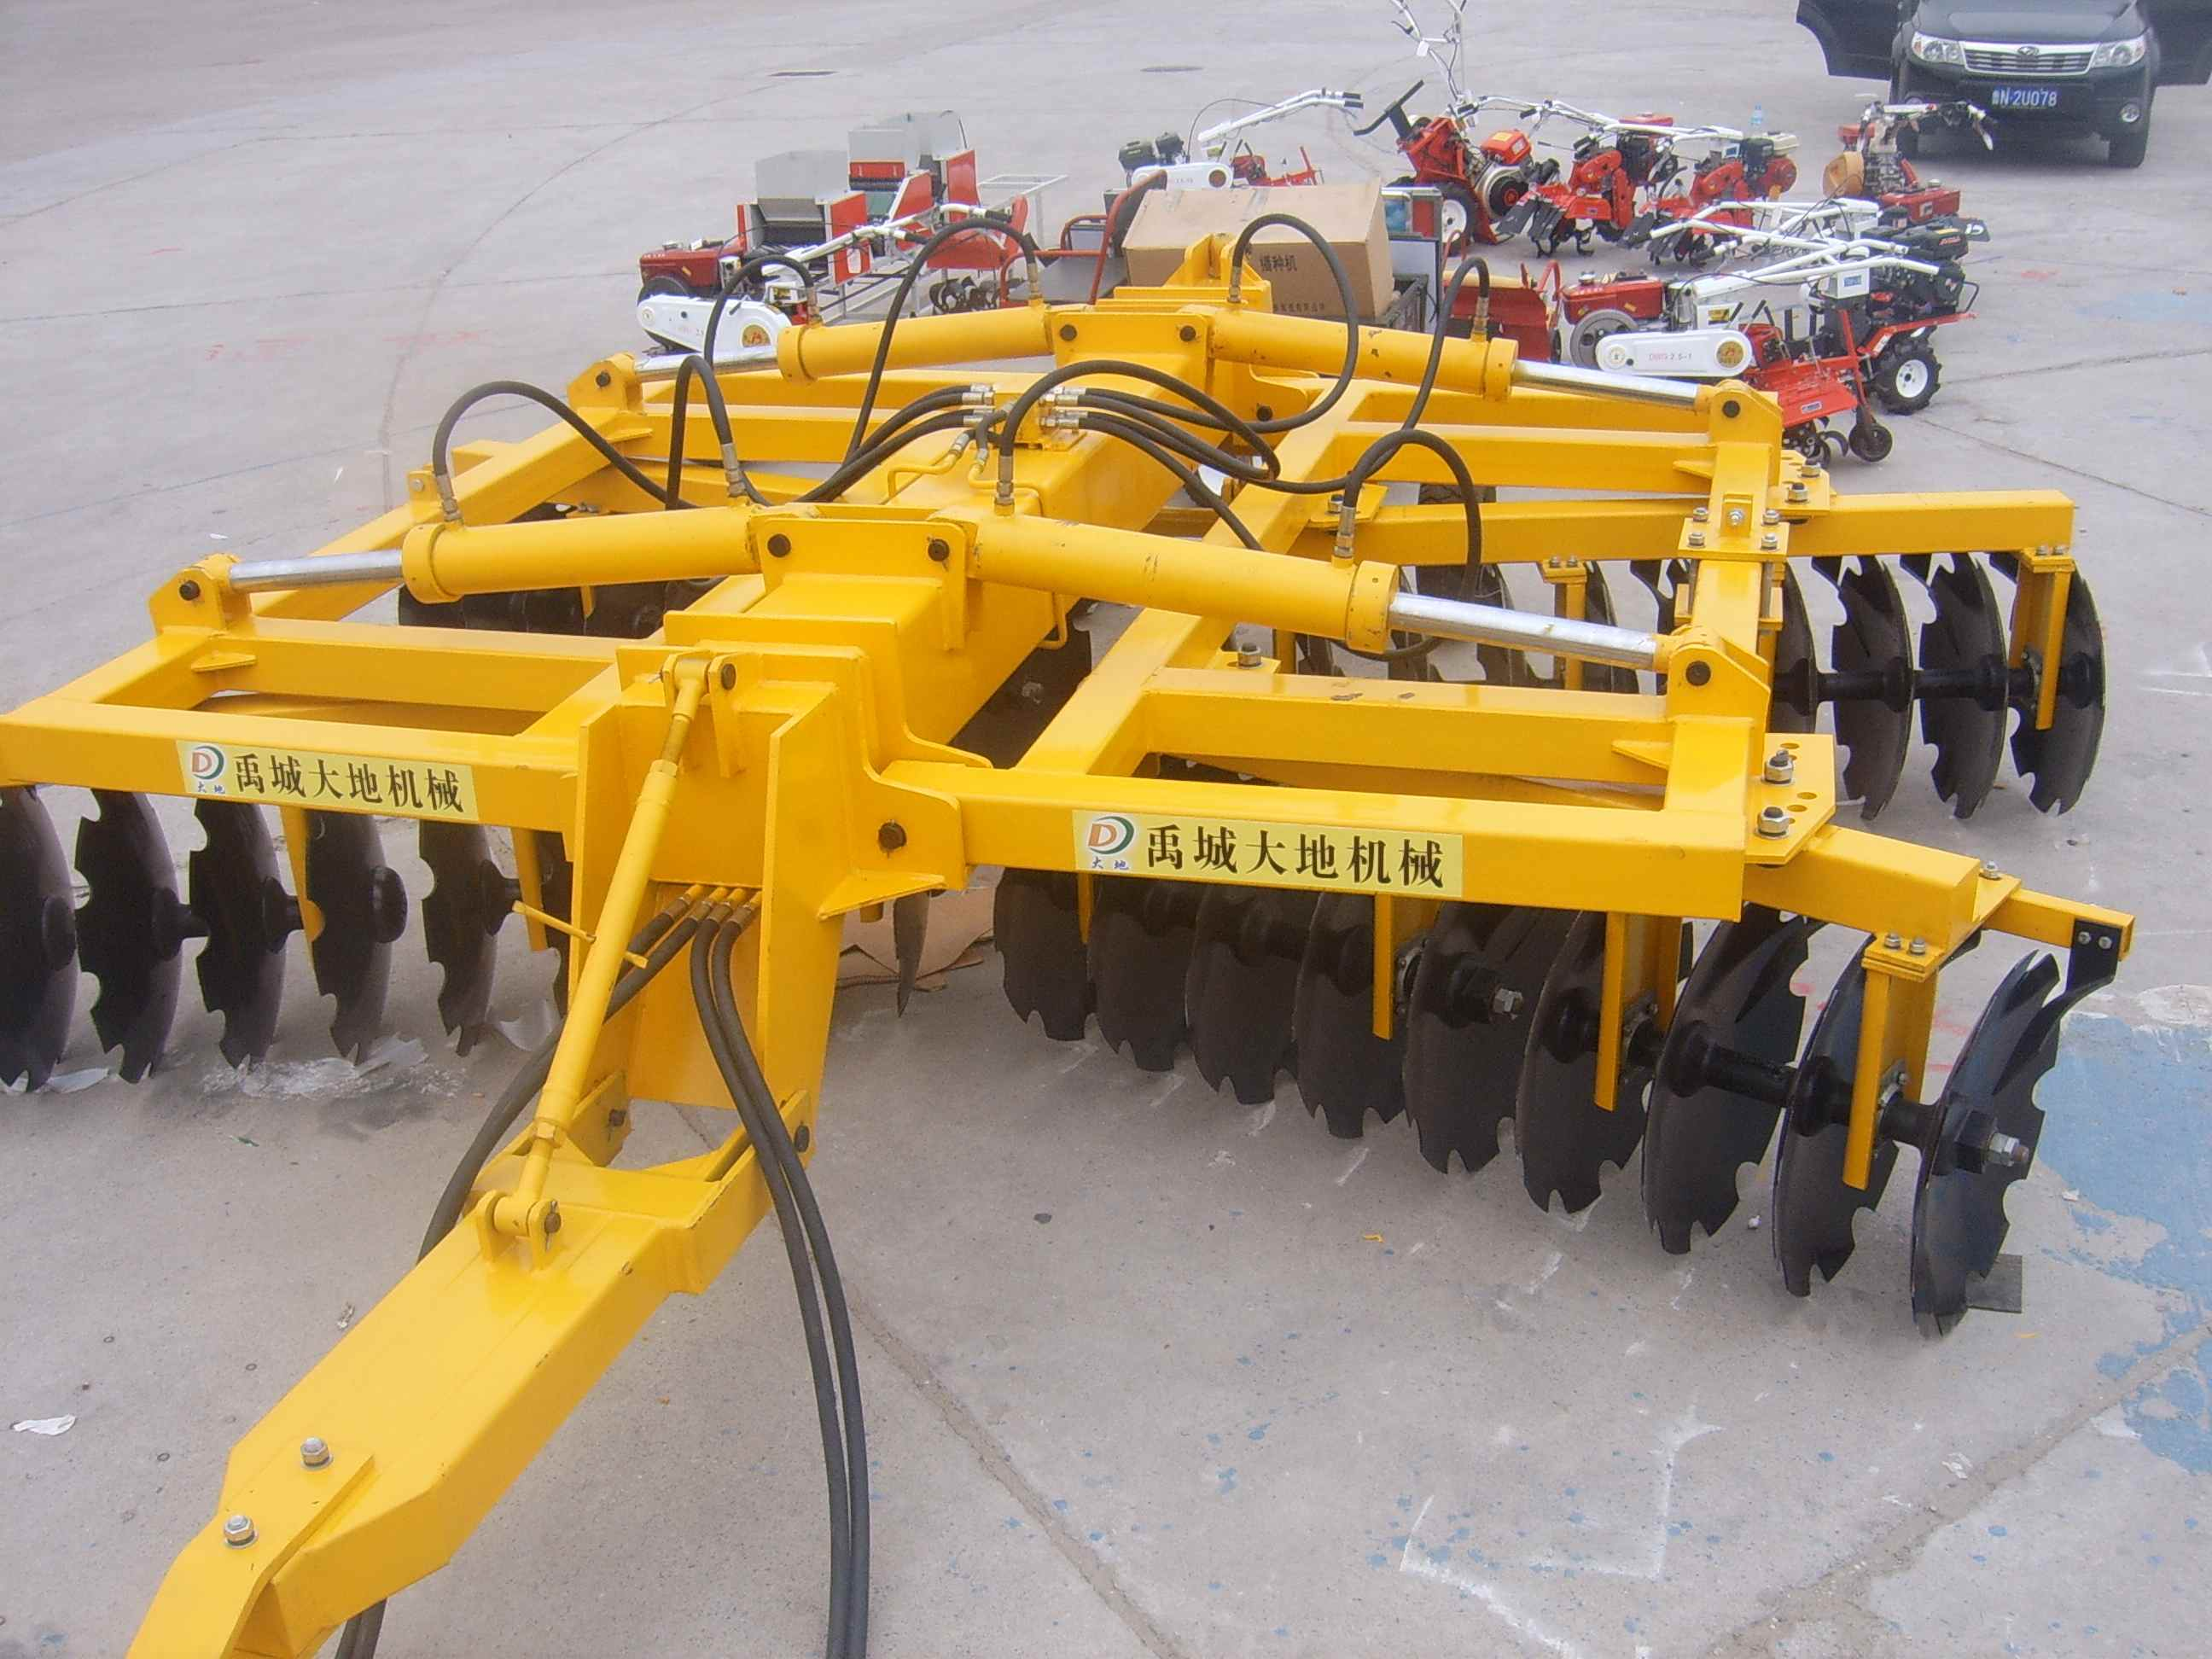 disc harrow machines